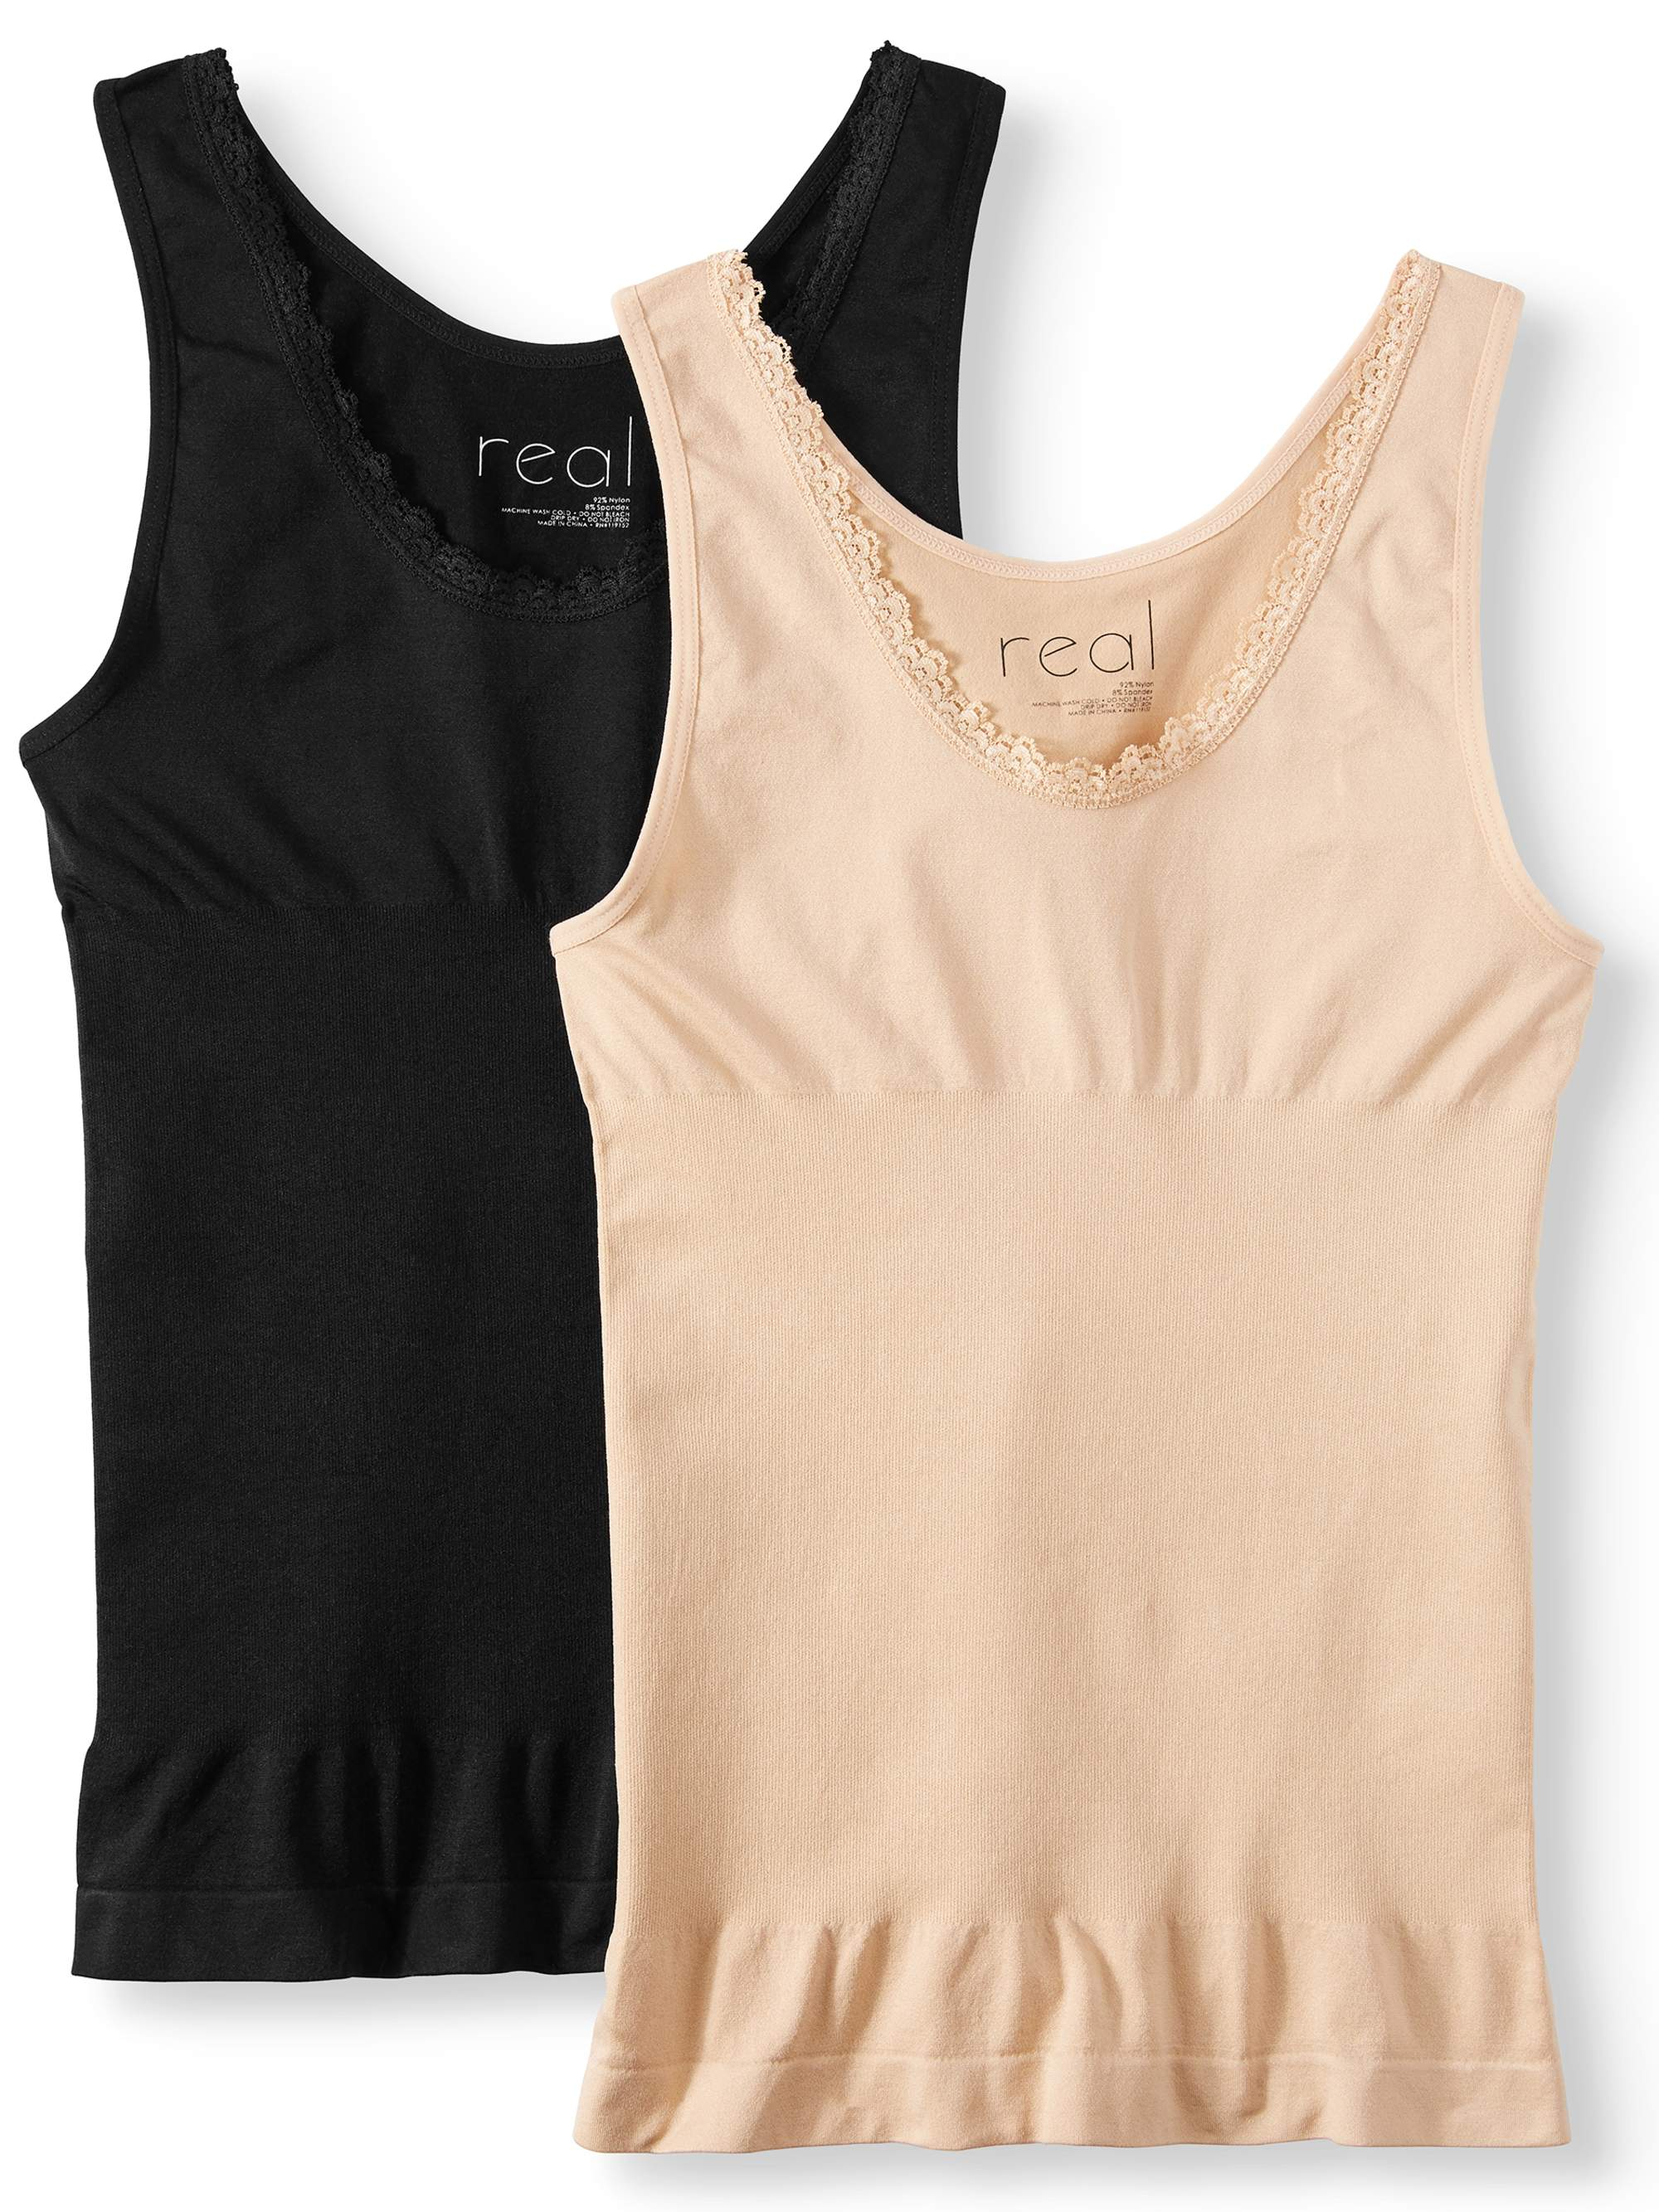 Women's and Women's Plus Luna 2 Pack Seamless Shaping Tank with Lace Trim